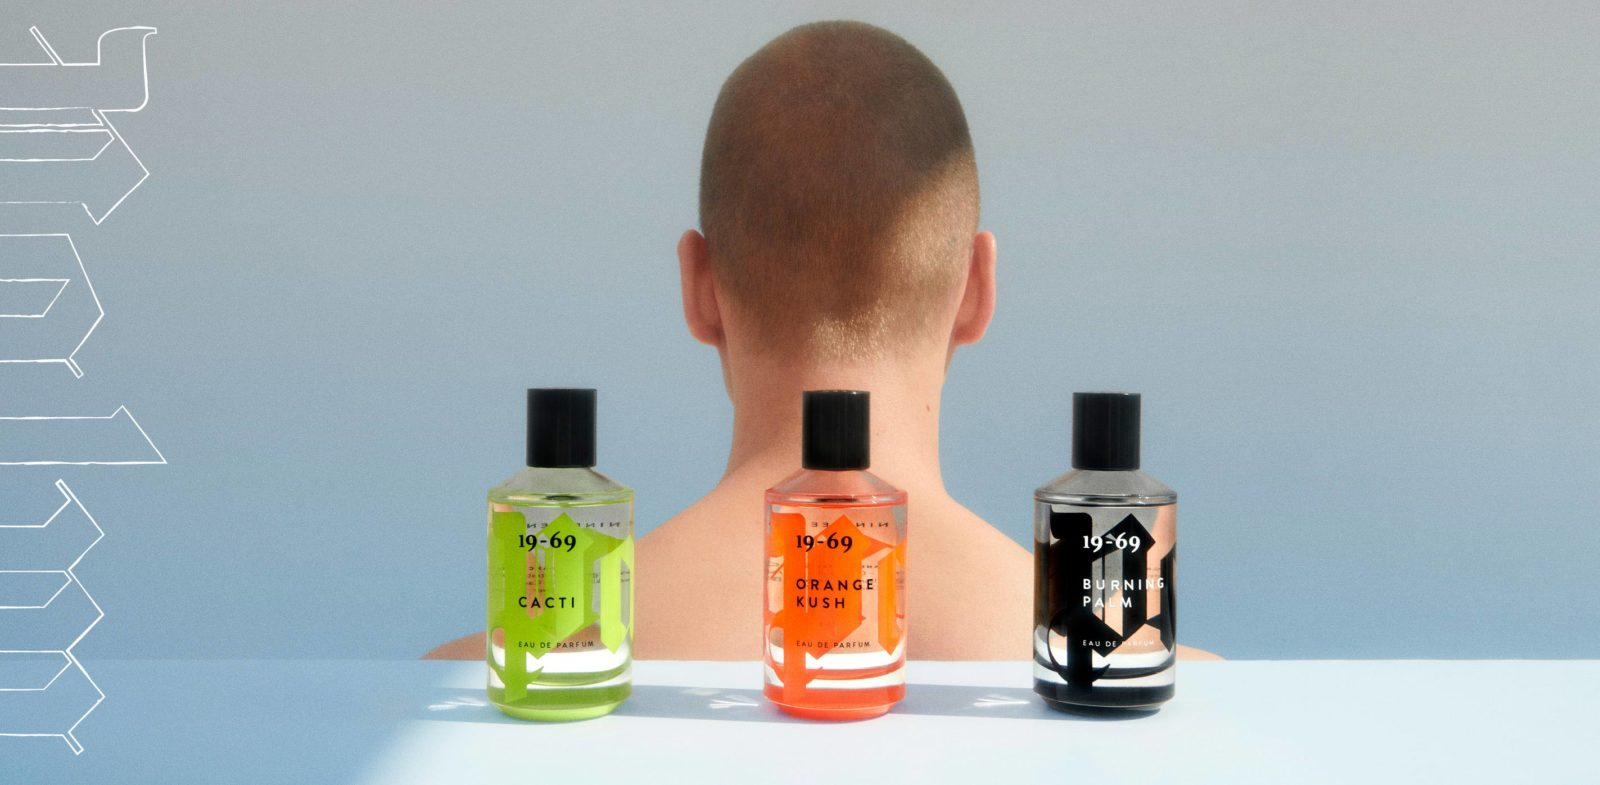 Palm Angels captures the essence of LA's subculture with a trio of fragrances